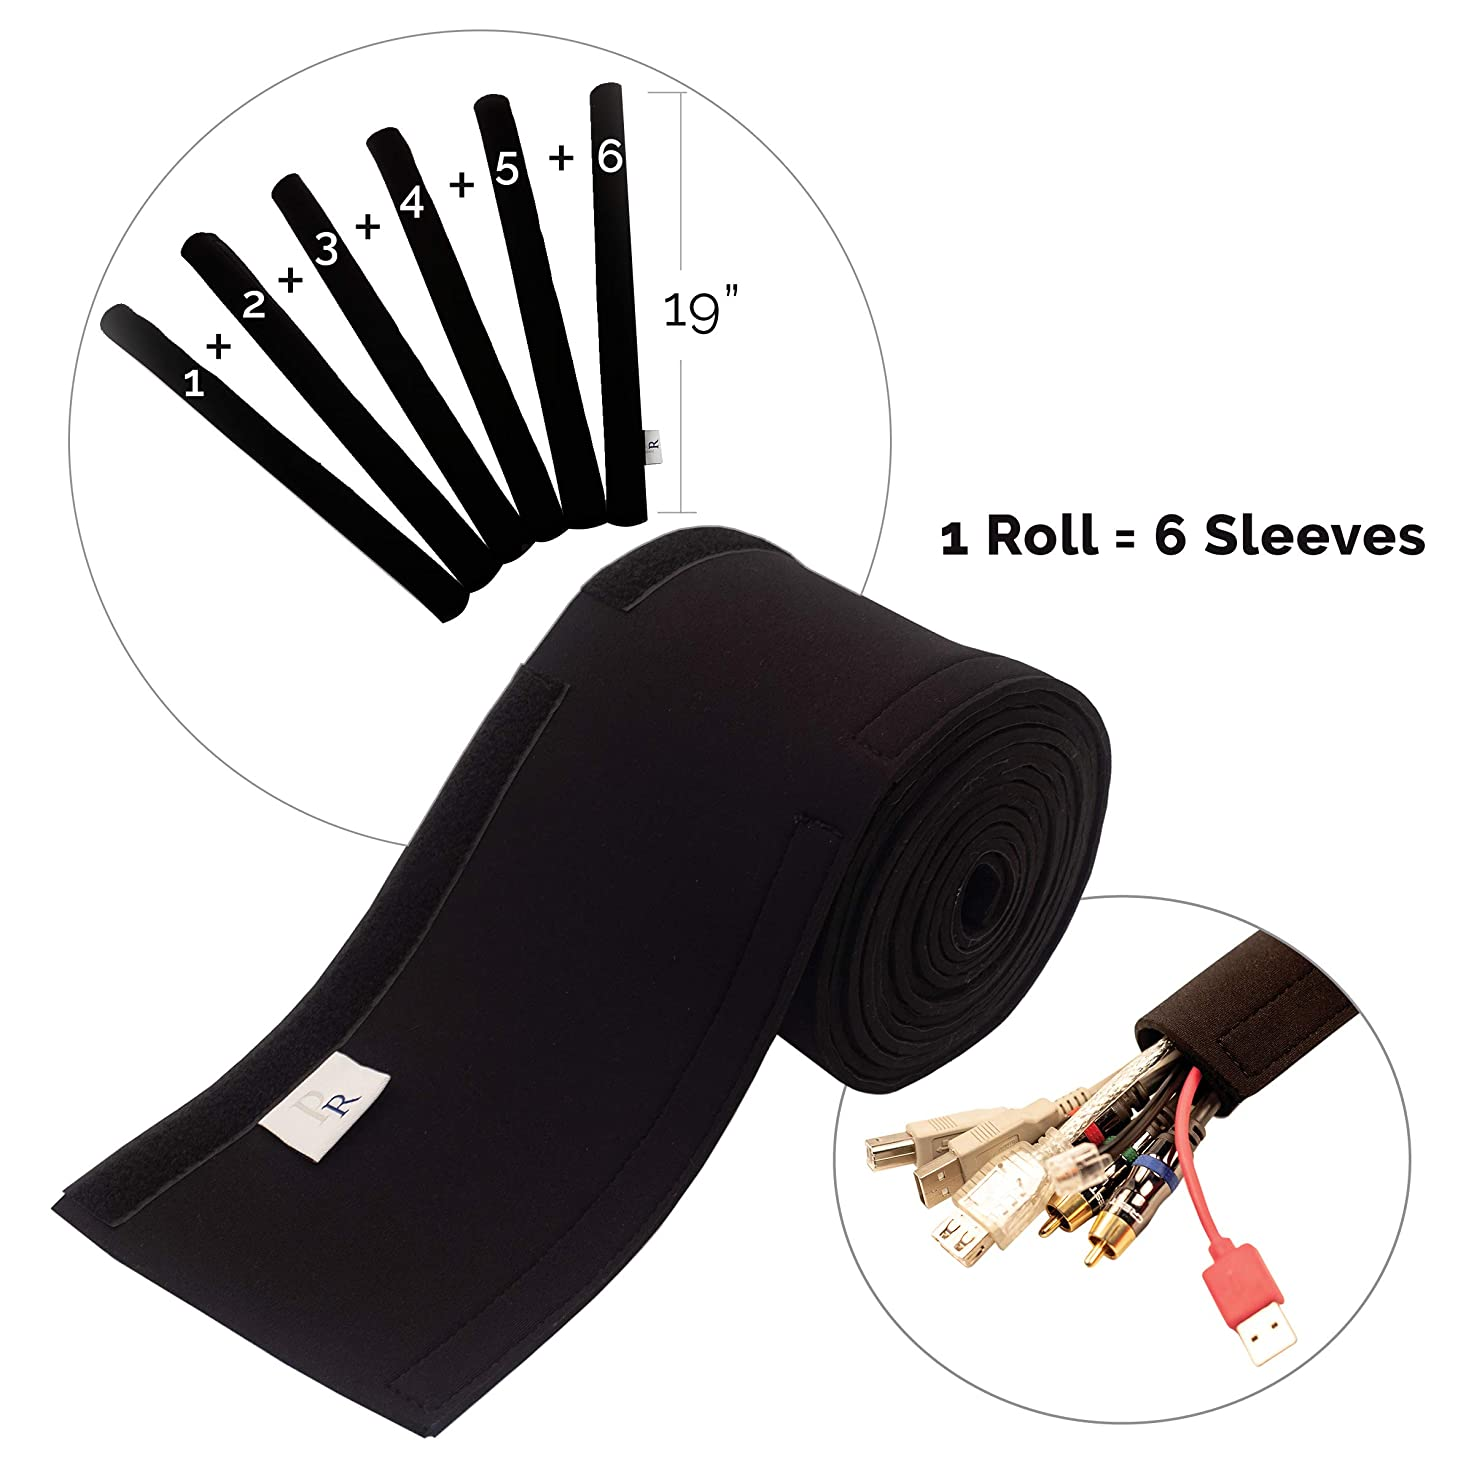 "P.Rendelle Under Desk Cable Management Sleeve. A Neoprene Flexible Wire Hider Cord Organizer & Cable Cover. Hides All Your TV and Computer Wires in Home & Office (One Roll Gives 6 x 19"" Sleeves) ugbyjmibkvcnf9"